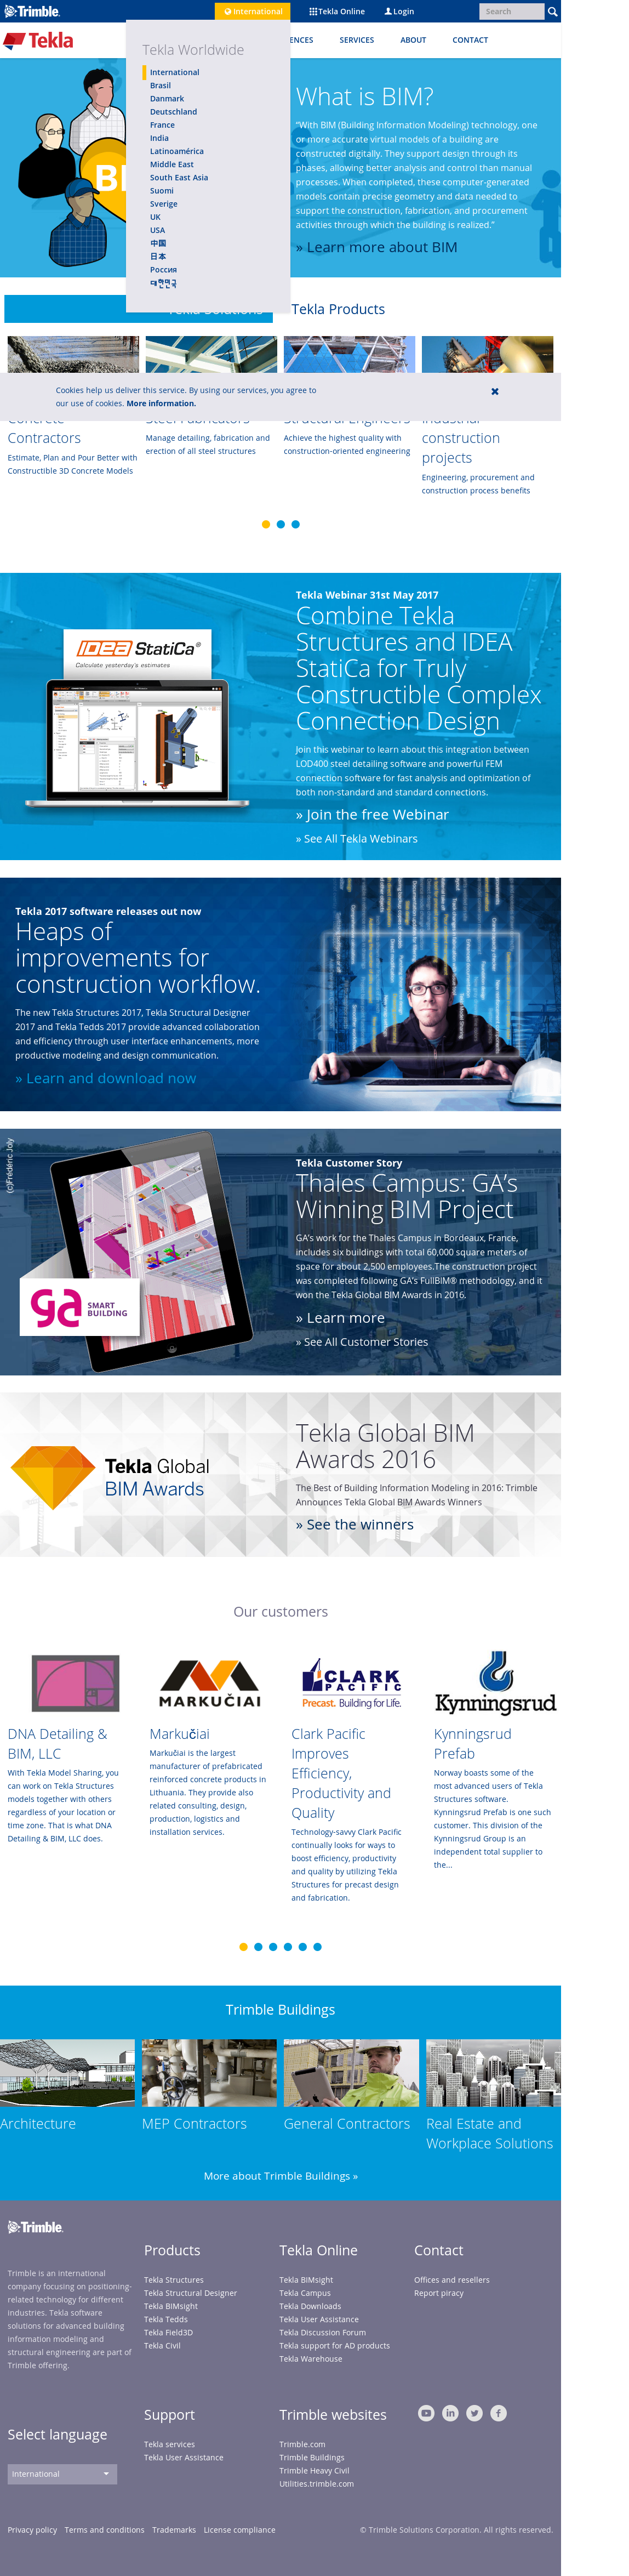 Owler Reports - Tekla: Tekla 2018 Packages Released for